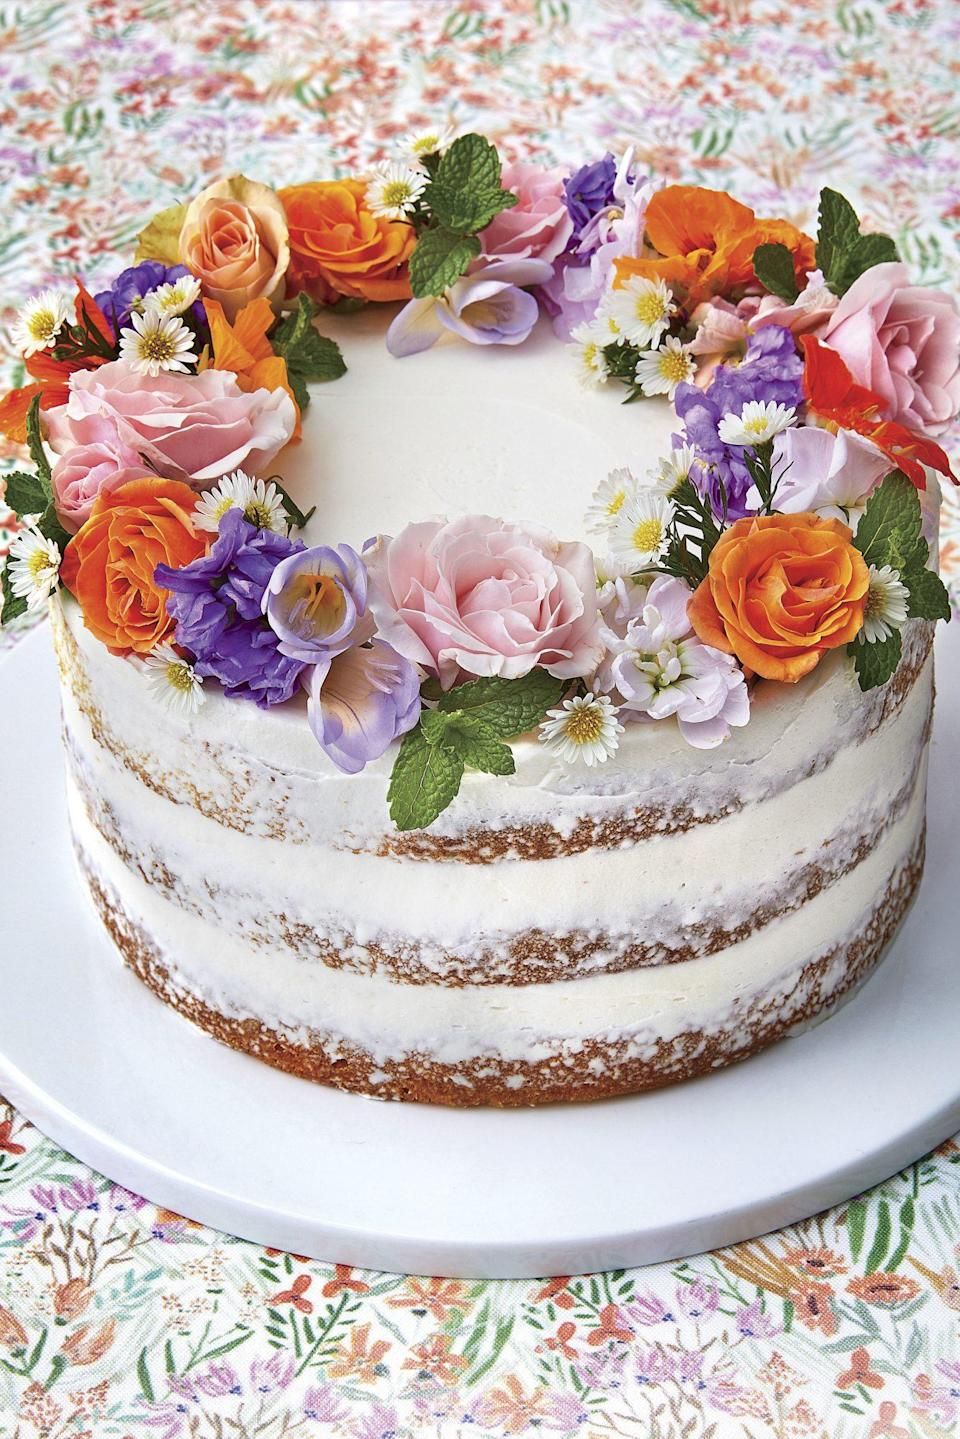 """<p>Perfect for birthdays, showers, or <a href=""""https://www.southernliving.com/desserts/cakes/party-cakes"""" rel=""""nofollow noopener"""" target=""""_blank"""" data-ylk=""""slk:special get-togethers"""" class=""""link rapid-noclick-resp"""">special get-togethers</a>, this flower-topped <a href=""""https://www.southernliving.com/desserts/cakes/layer-cakes"""" rel=""""nofollow noopener"""" target=""""_blank"""" data-ylk=""""slk:layer cake"""" class=""""link rapid-noclick-resp"""">layer cake </a>is so pretty you won't want to cut it! Made with a lemon cake mix and Lemon Buttercream frosting, it's incredibly simple to make, even though it looks impressive. Top with a ring of <a href=""""https://www.southernliving.com/food/entertaining/edible-flowers"""" rel=""""nofollow noopener"""" target=""""_blank"""" data-ylk=""""slk:edible flowers"""" class=""""link rapid-noclick-resp"""">edible flowers</a> and prepare for compliments.</p>"""